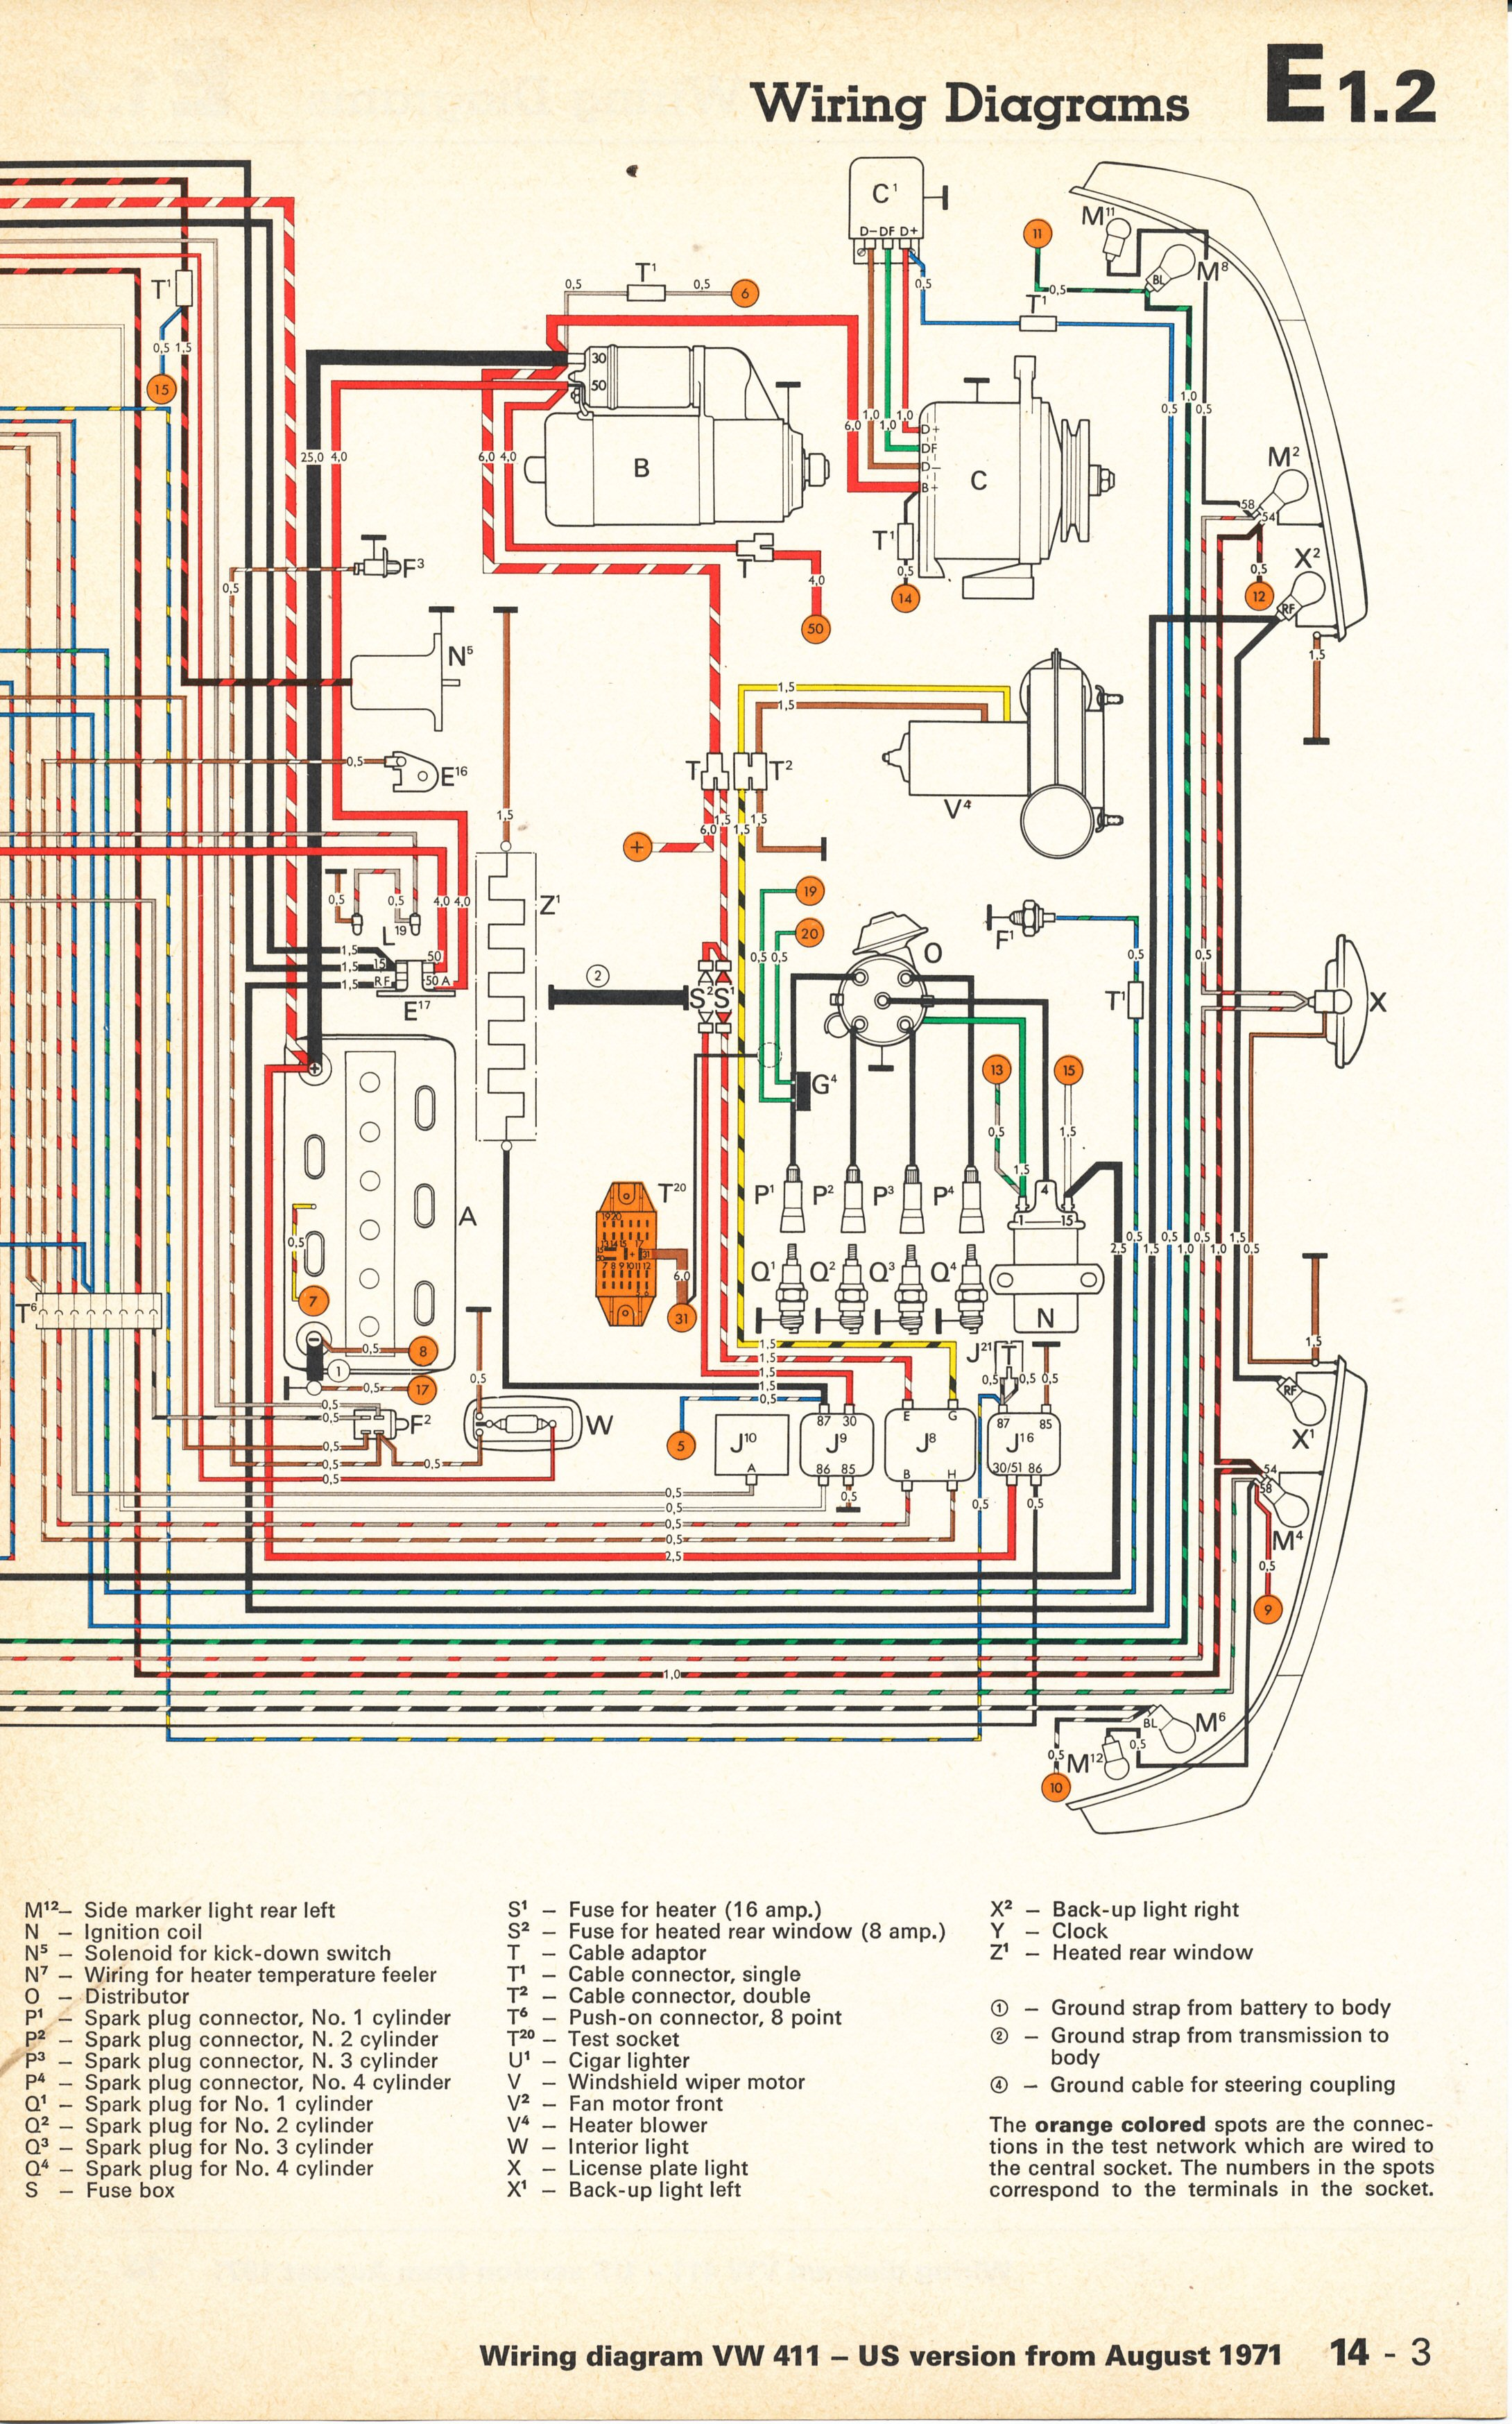 411_1972b_usversion?resize\\\\\\\\\\\\\\\\\\\\\\\\\\\\\\\=665%2C1066 2002 impala wiring diagram 2002 chevy impala bcm diagram \u2022 free 1964 impala wiring diagram at webbmarketing.co